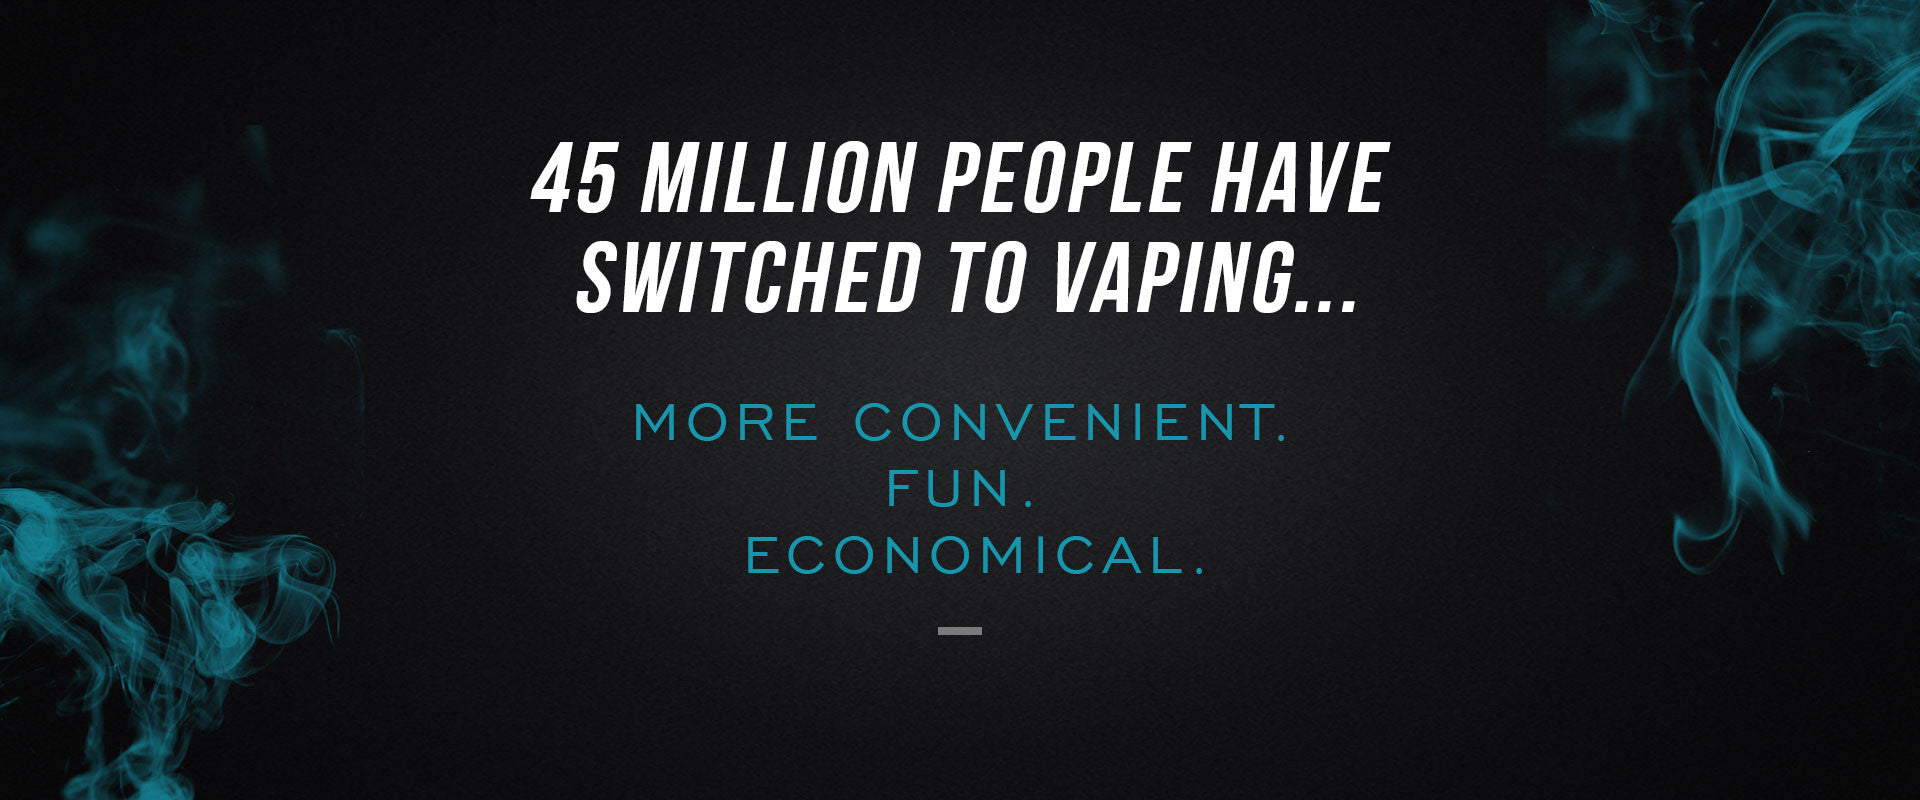 45 Million People Switched to Vaping